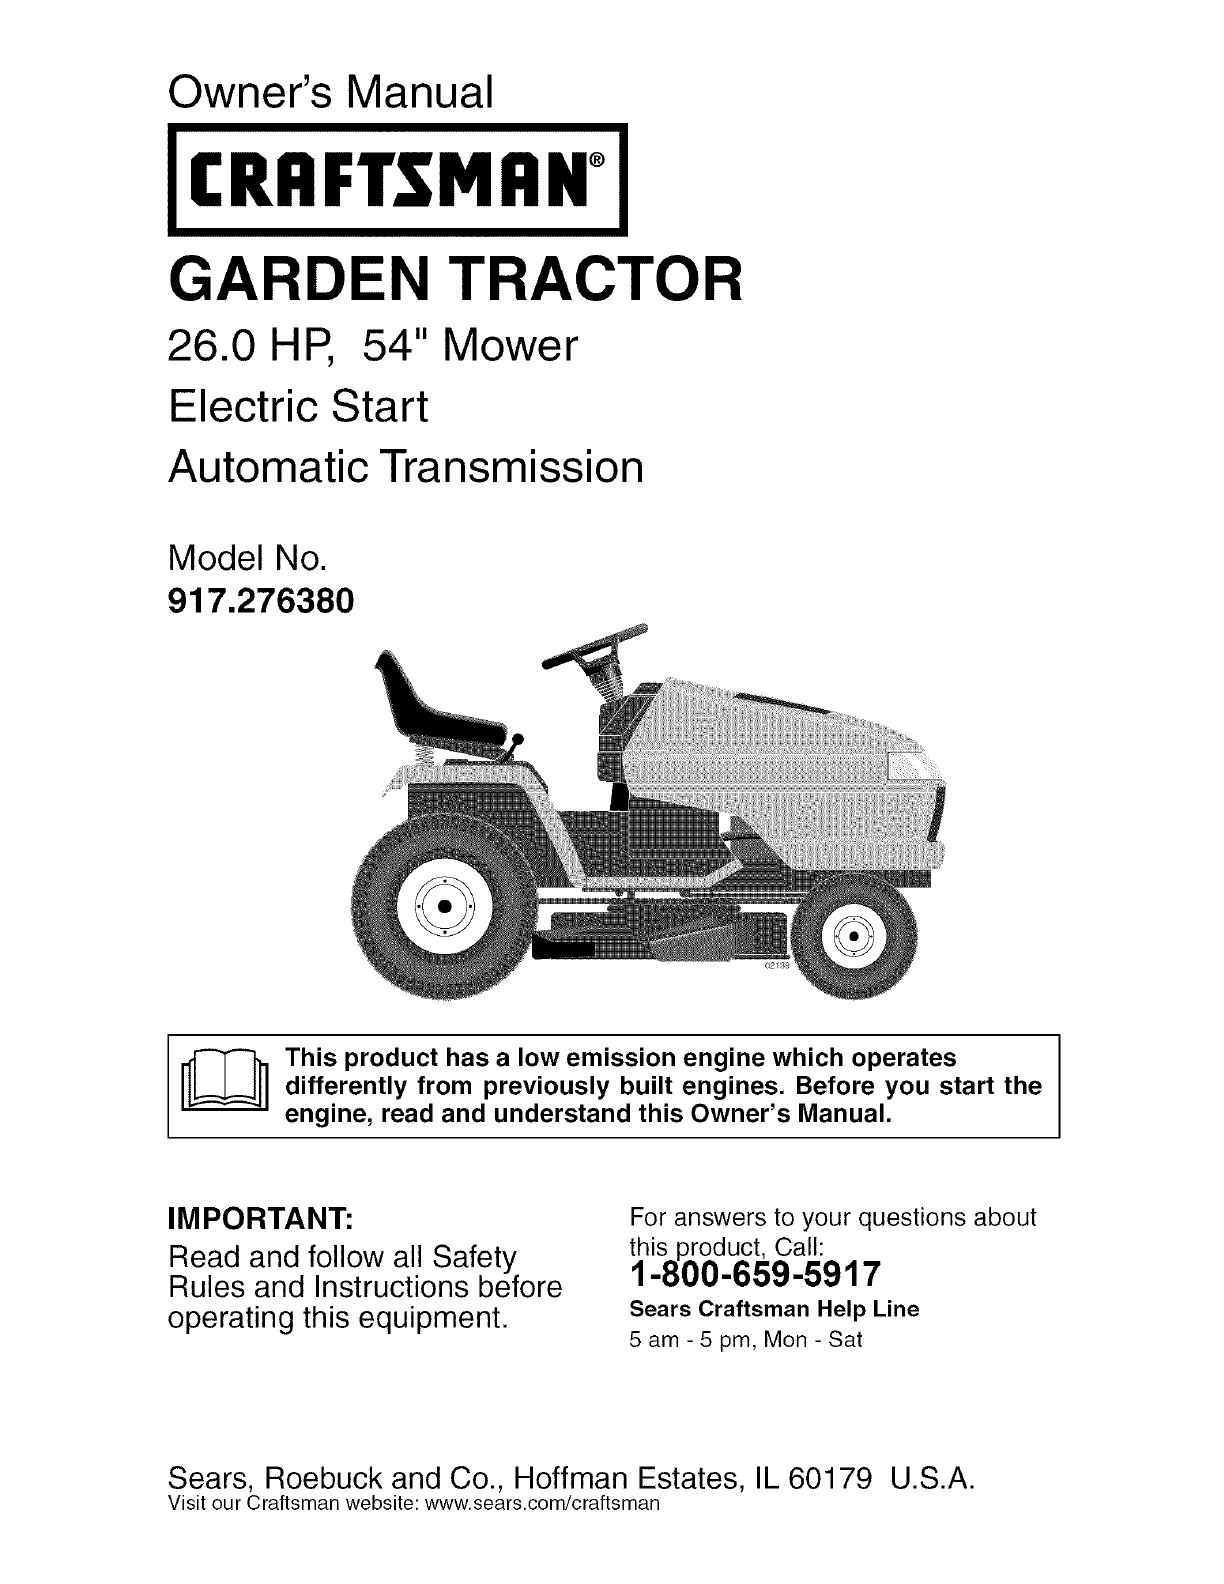 Craftsman 917276380 User Manual Tractor Manuals And Guides L0503415 Sears 26 Horse Kohler Engine Electrical Diagram